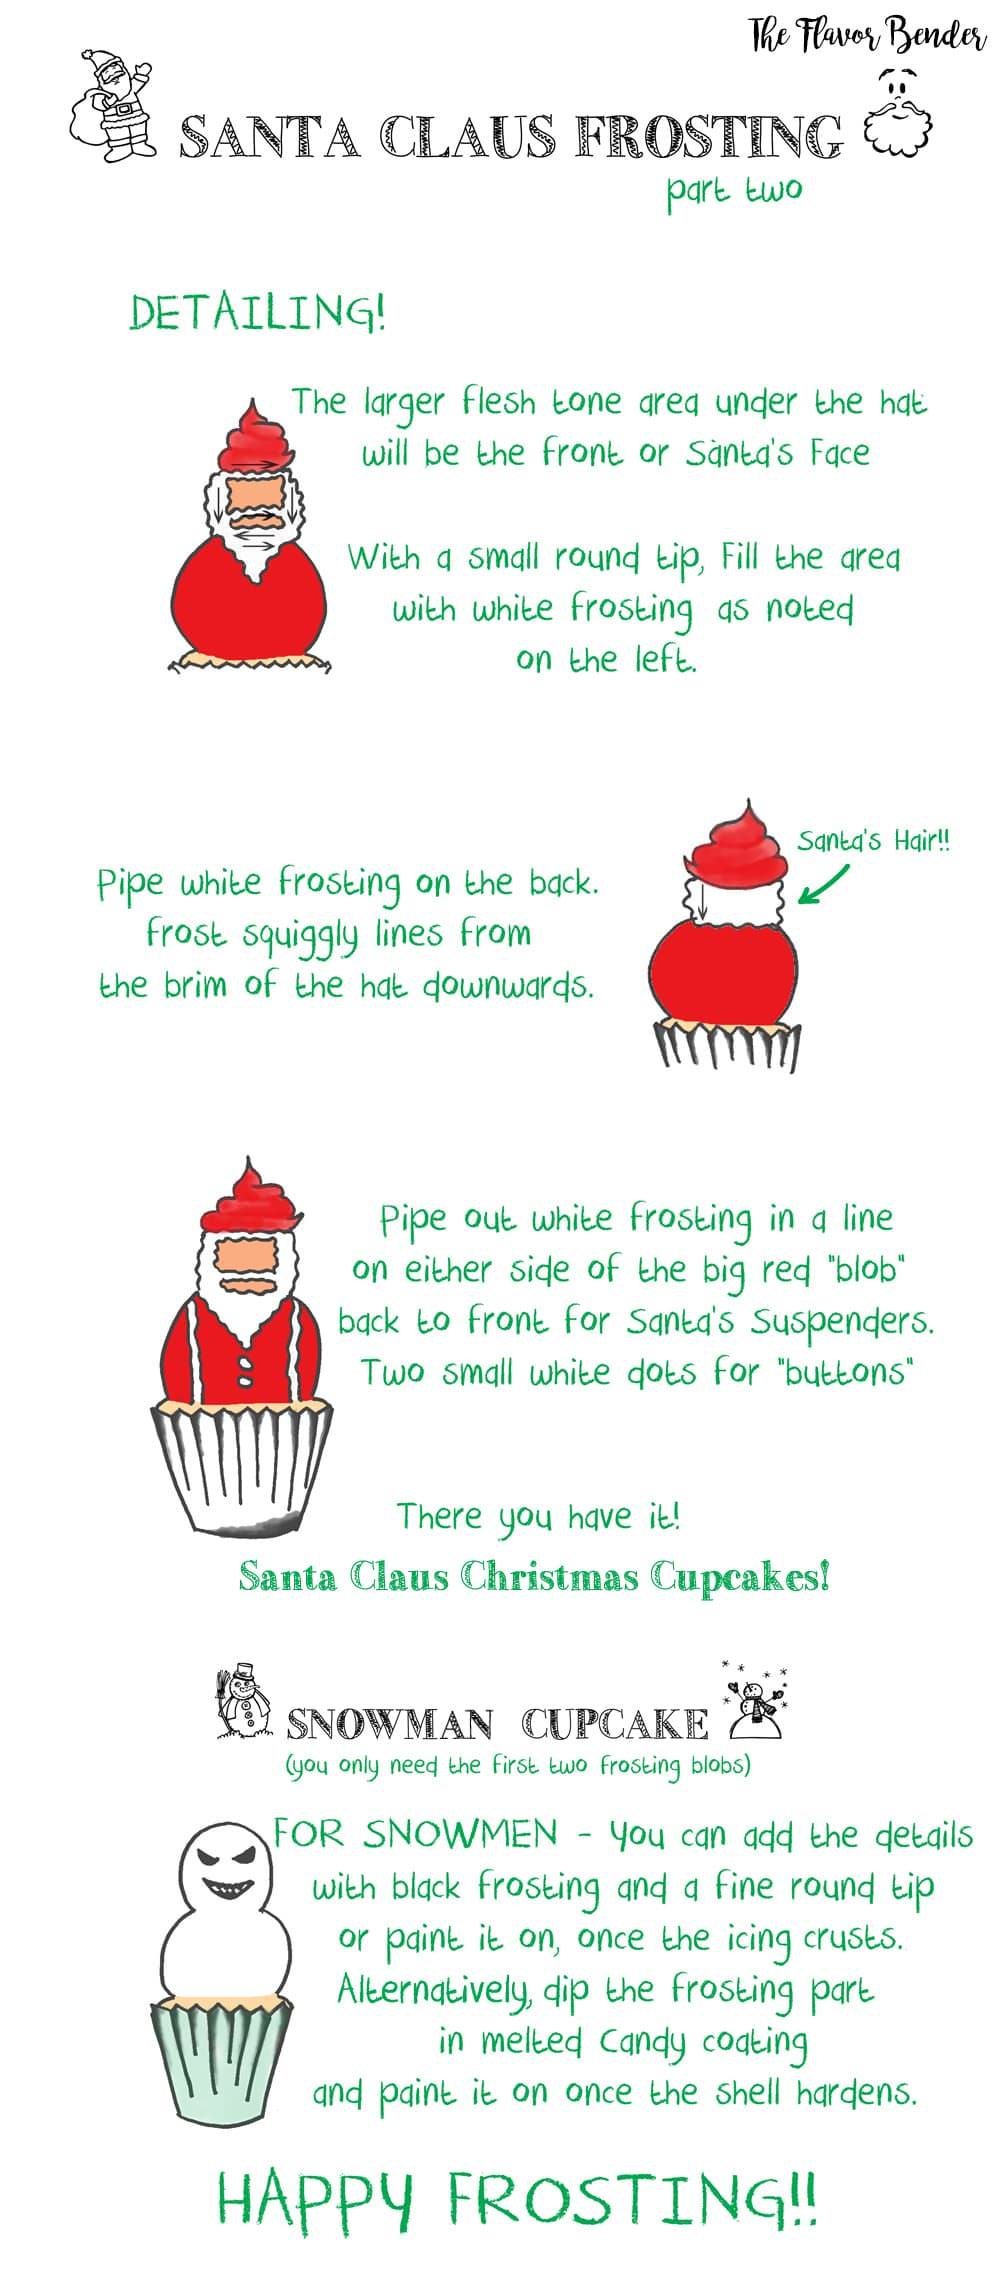 image regarding Santa Claus Printable Pictures identify Santa Claus Cupcakes - Santa Claus Frosting Decorating guide